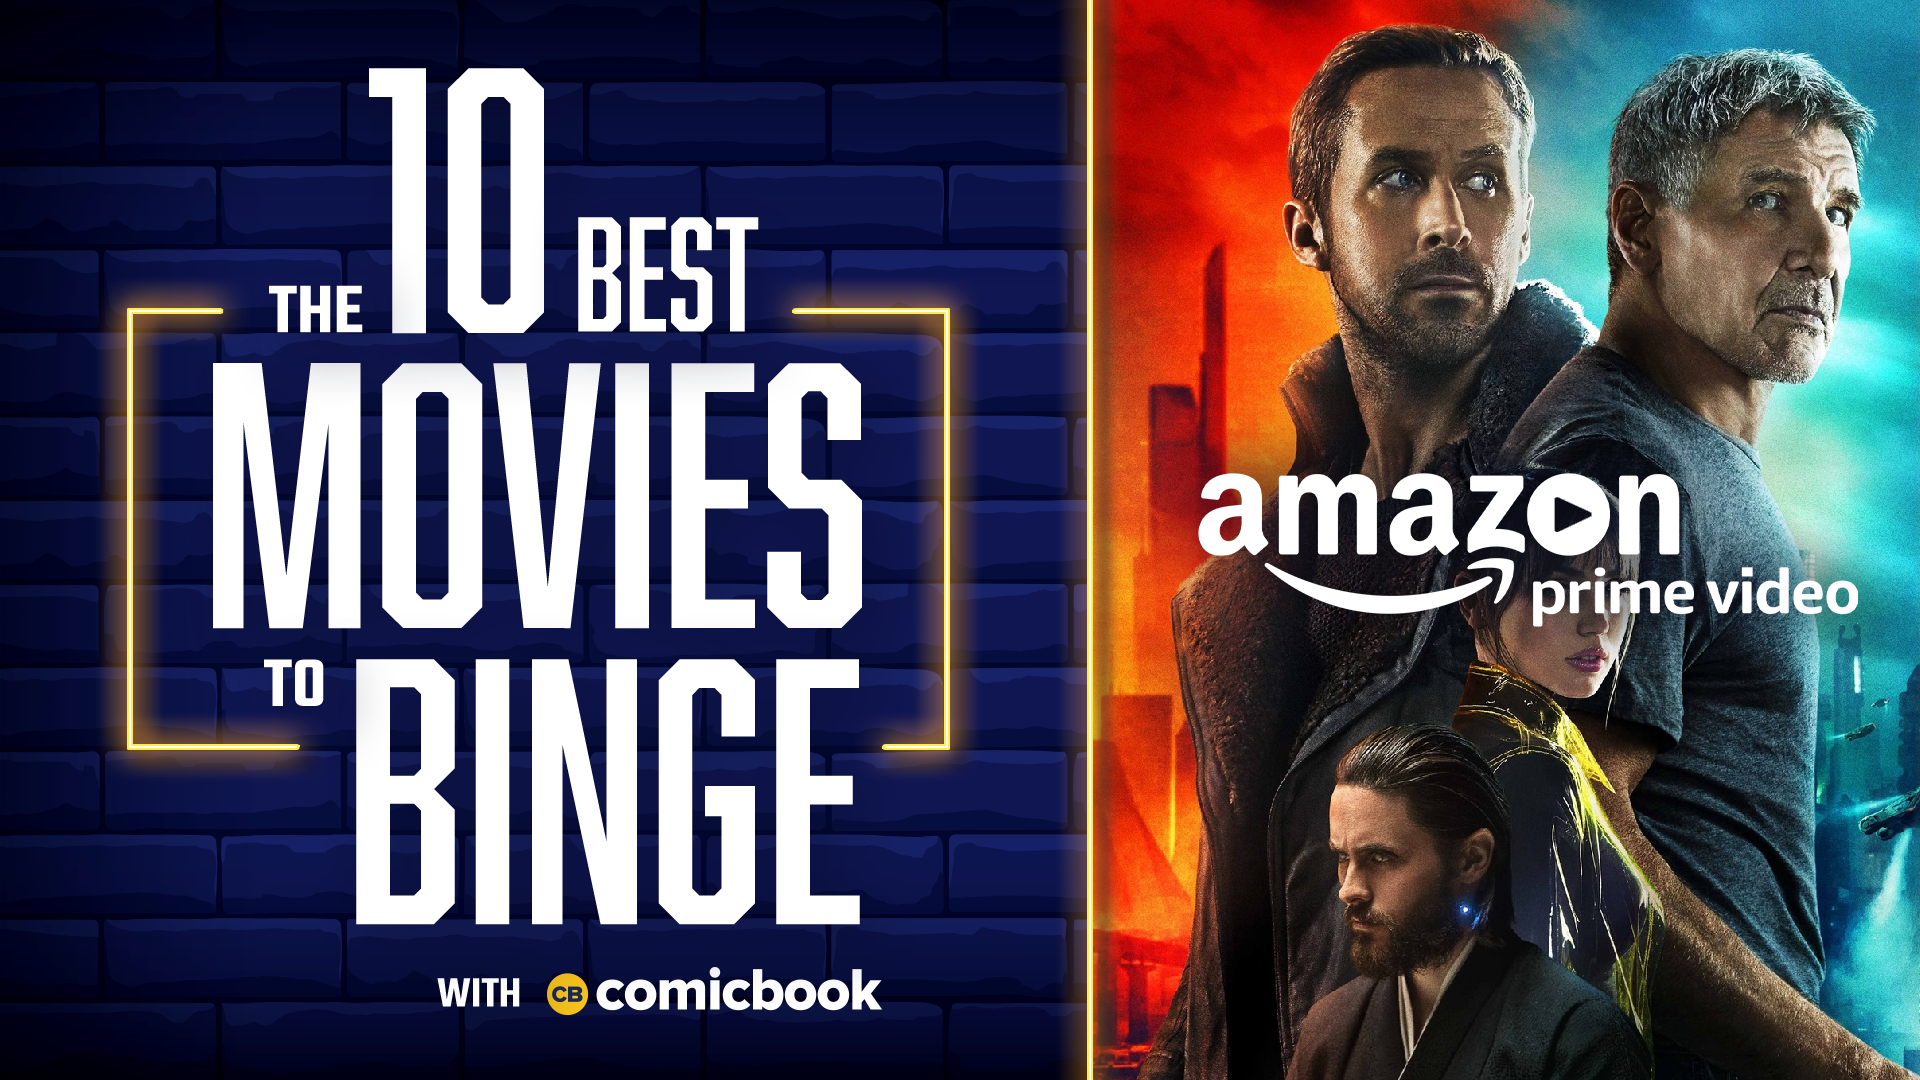 10 Best Movies to Binge on Amazon Prime